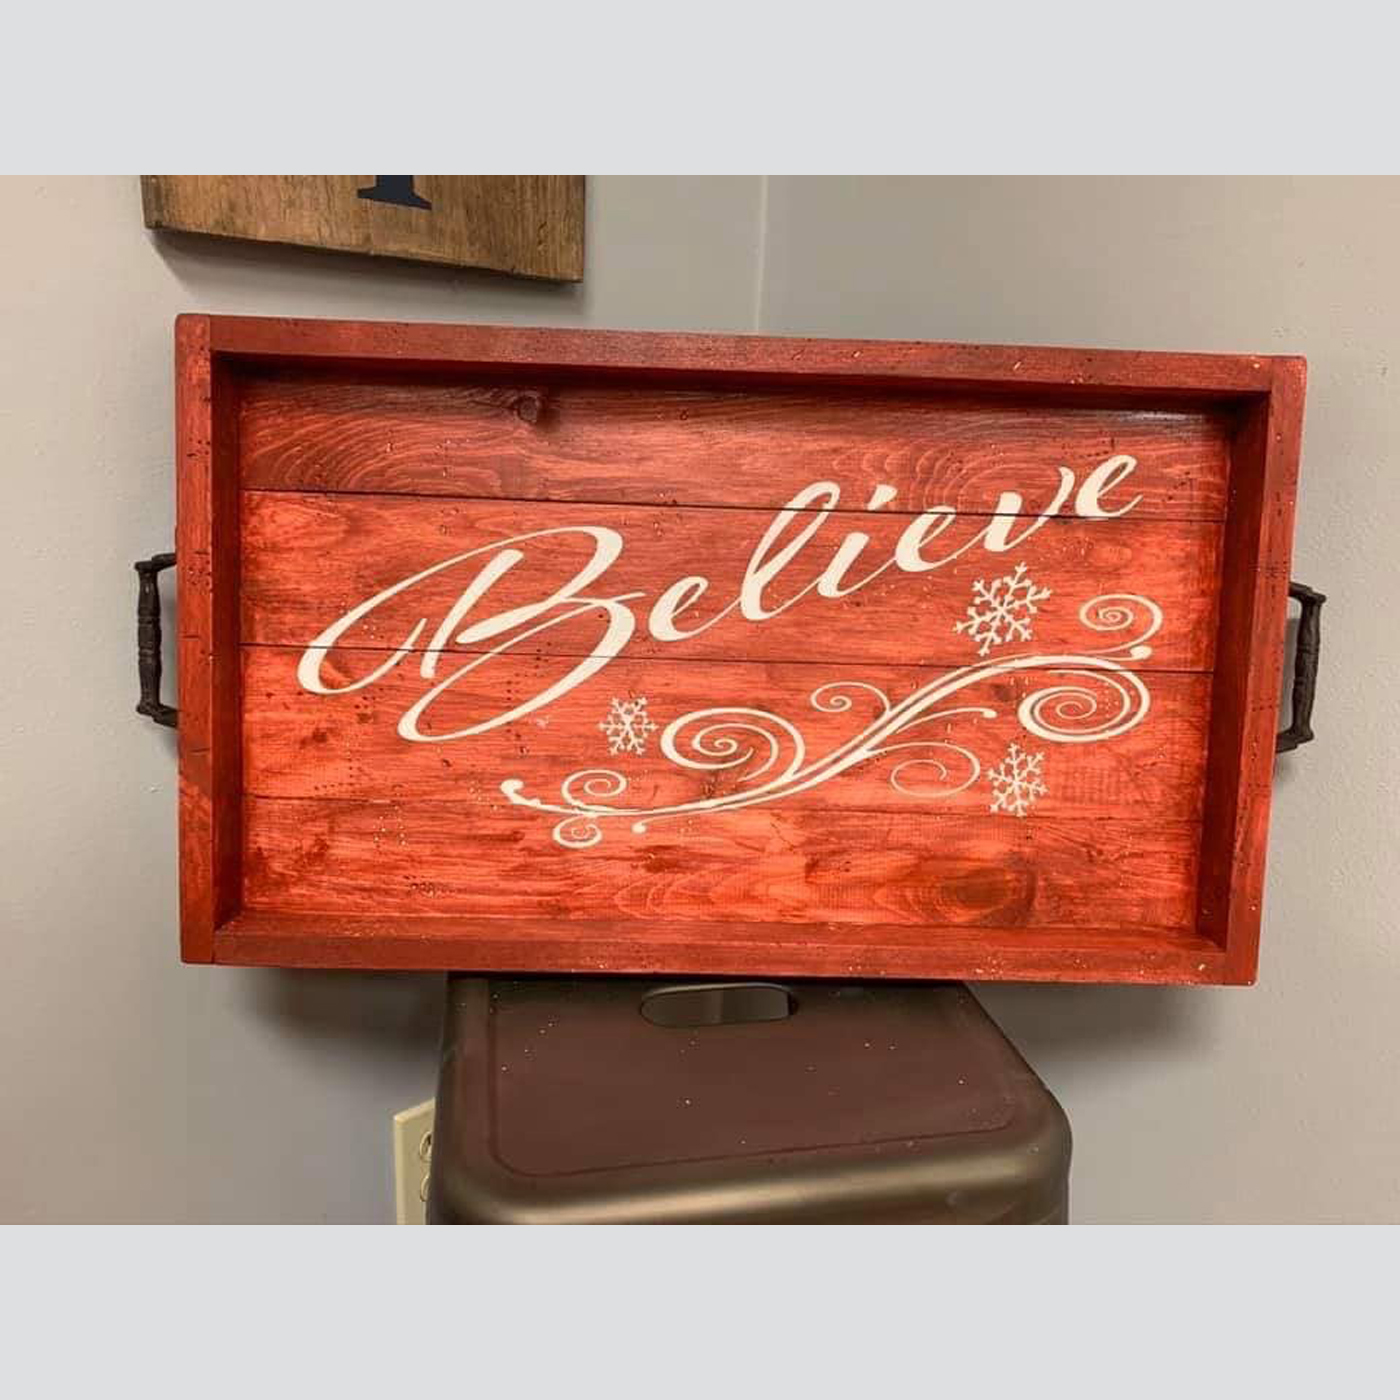 Tray- Believe with Snowflakes DIY Wood Sign Christmas